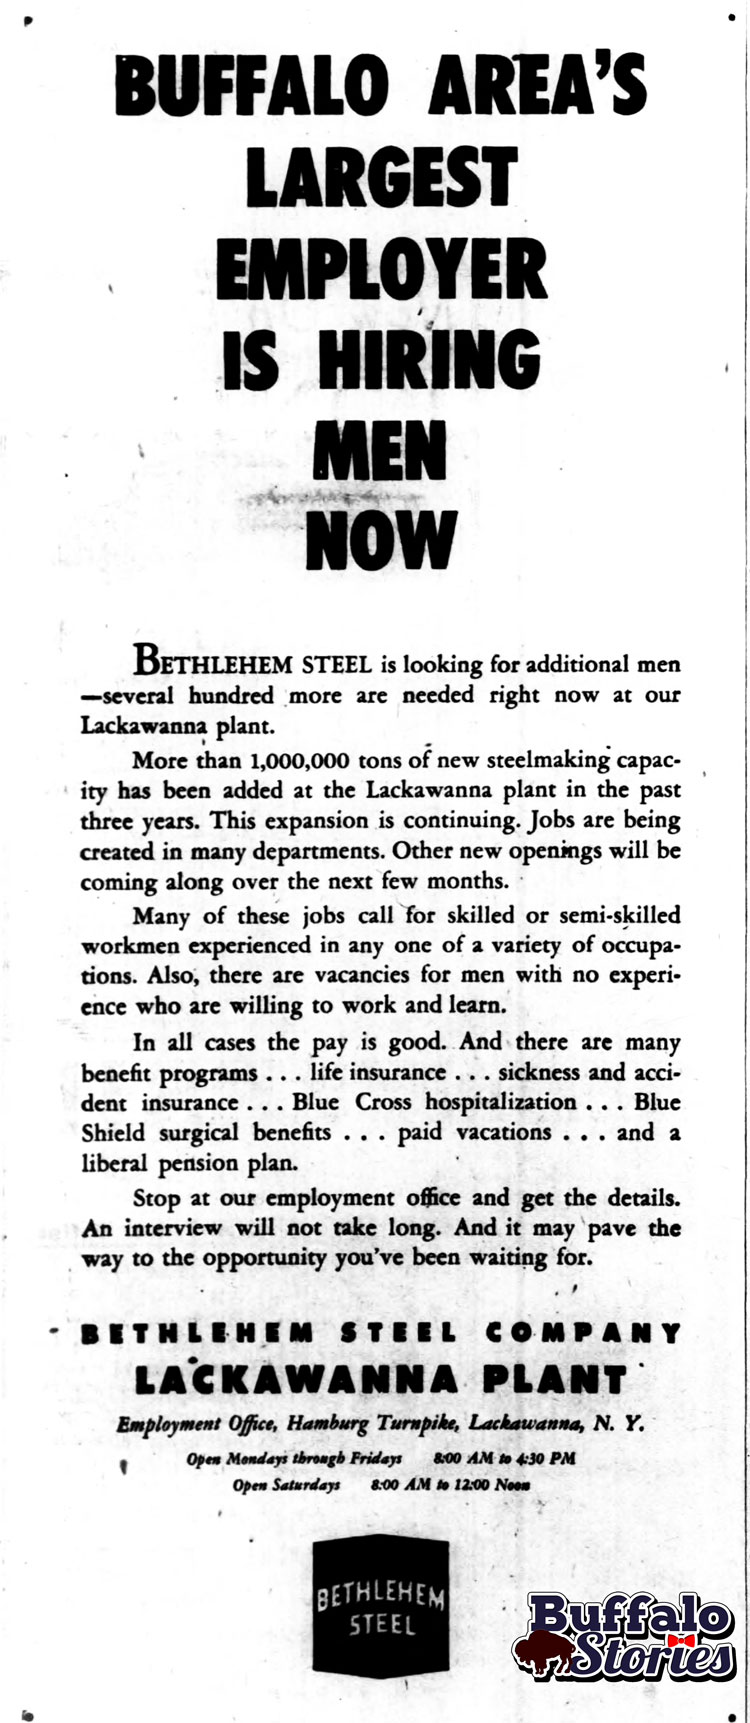 Bethlehem Steel ad, 1953 (Buffalo Stories archives)